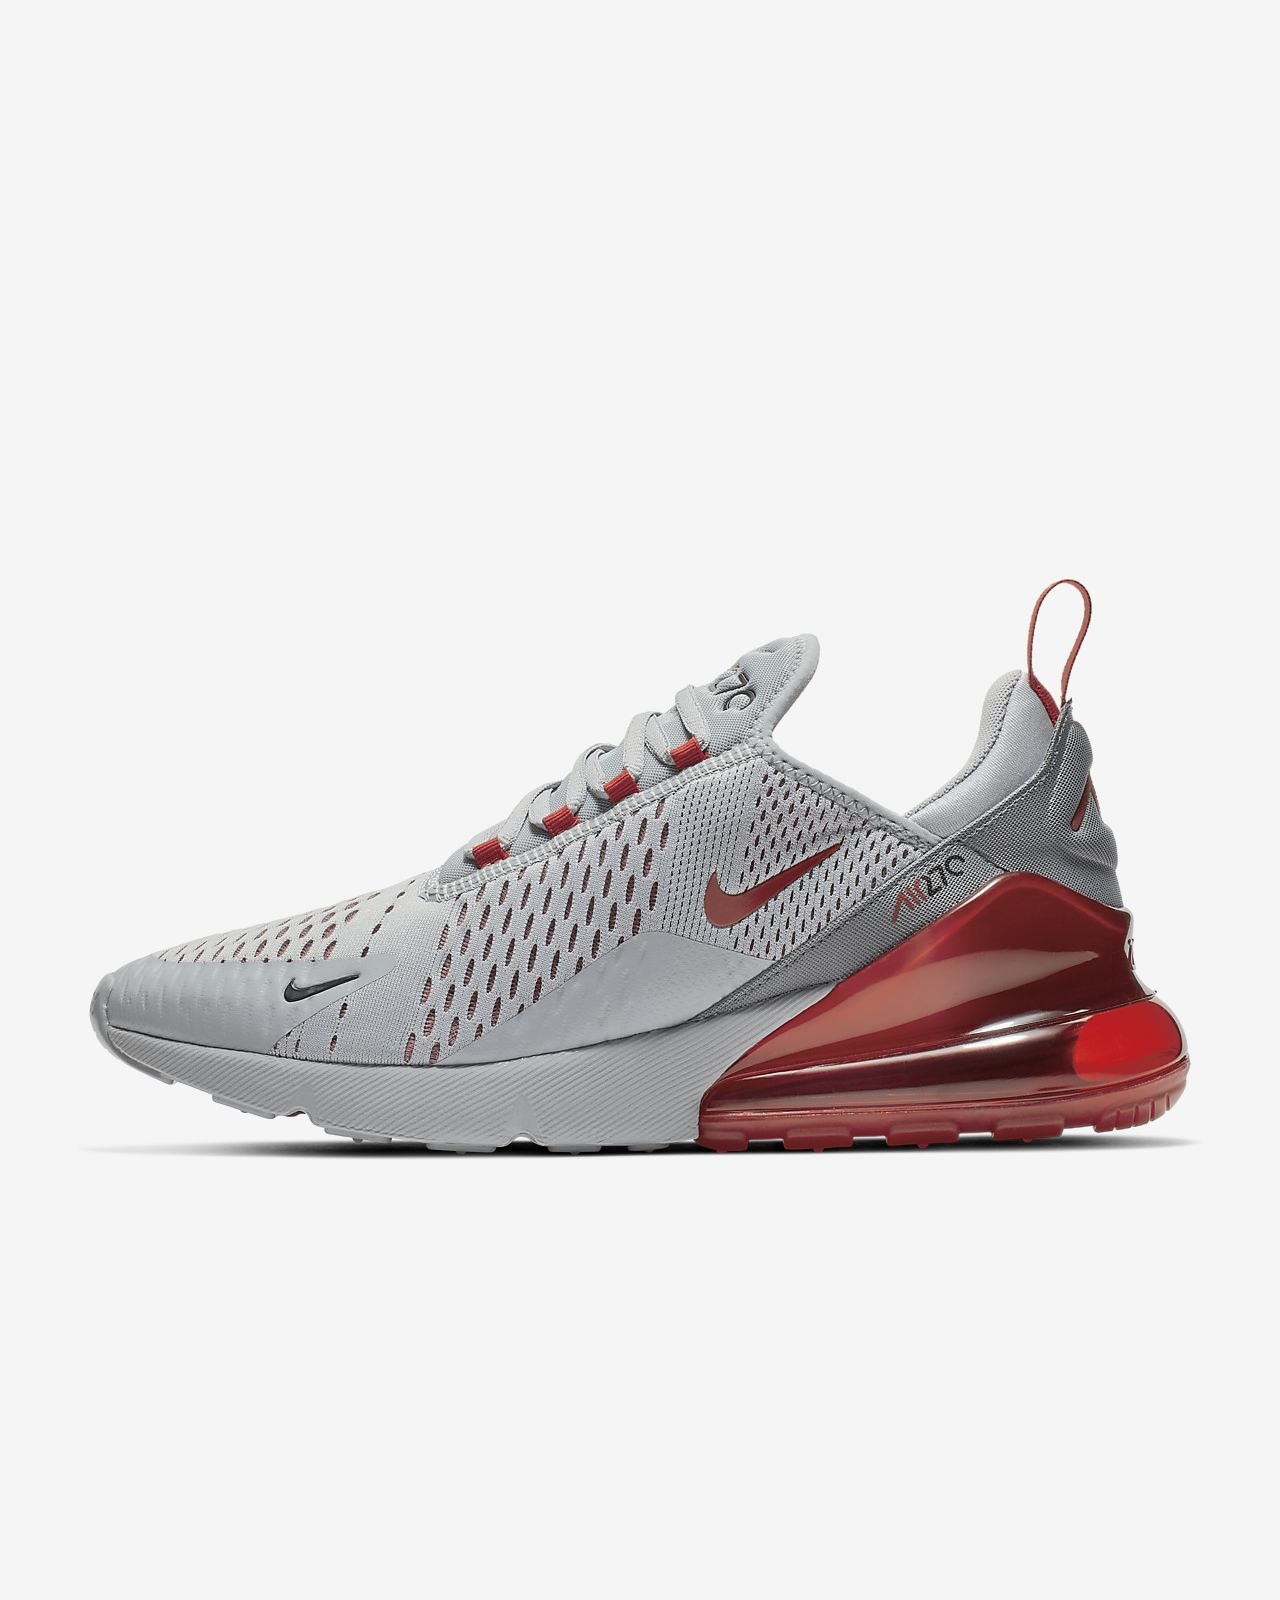 sports shoes bce28 54aea Chaussure Nike Air Max 270 pour Homme. Nike.com FR